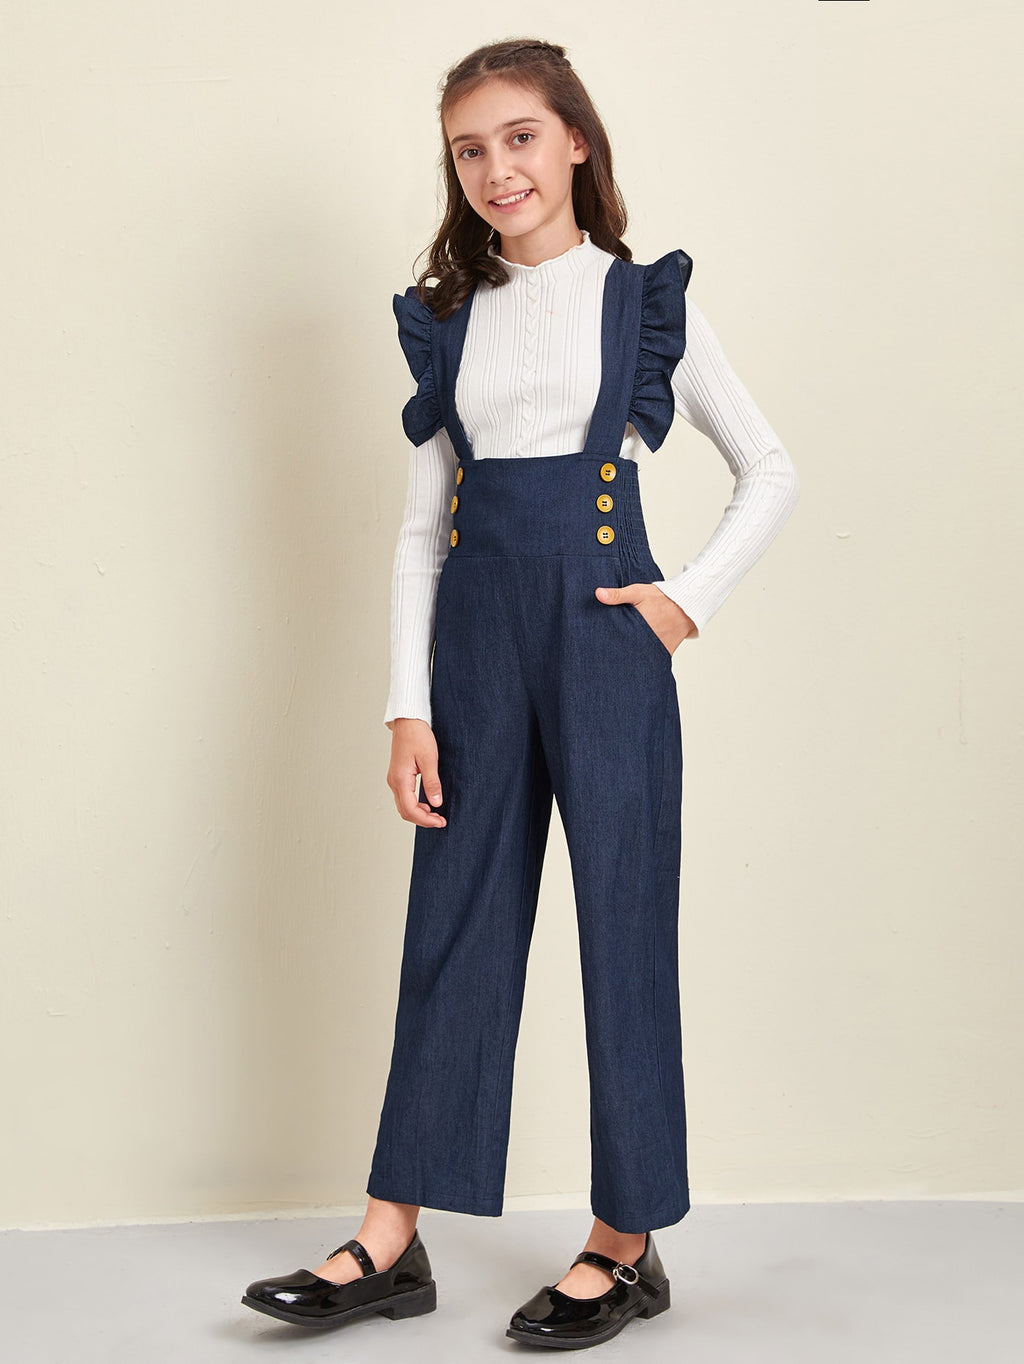 Girls Ruffle Trim Criss Cross Shirred Back Slant Pocket Suspender Jumpsuit